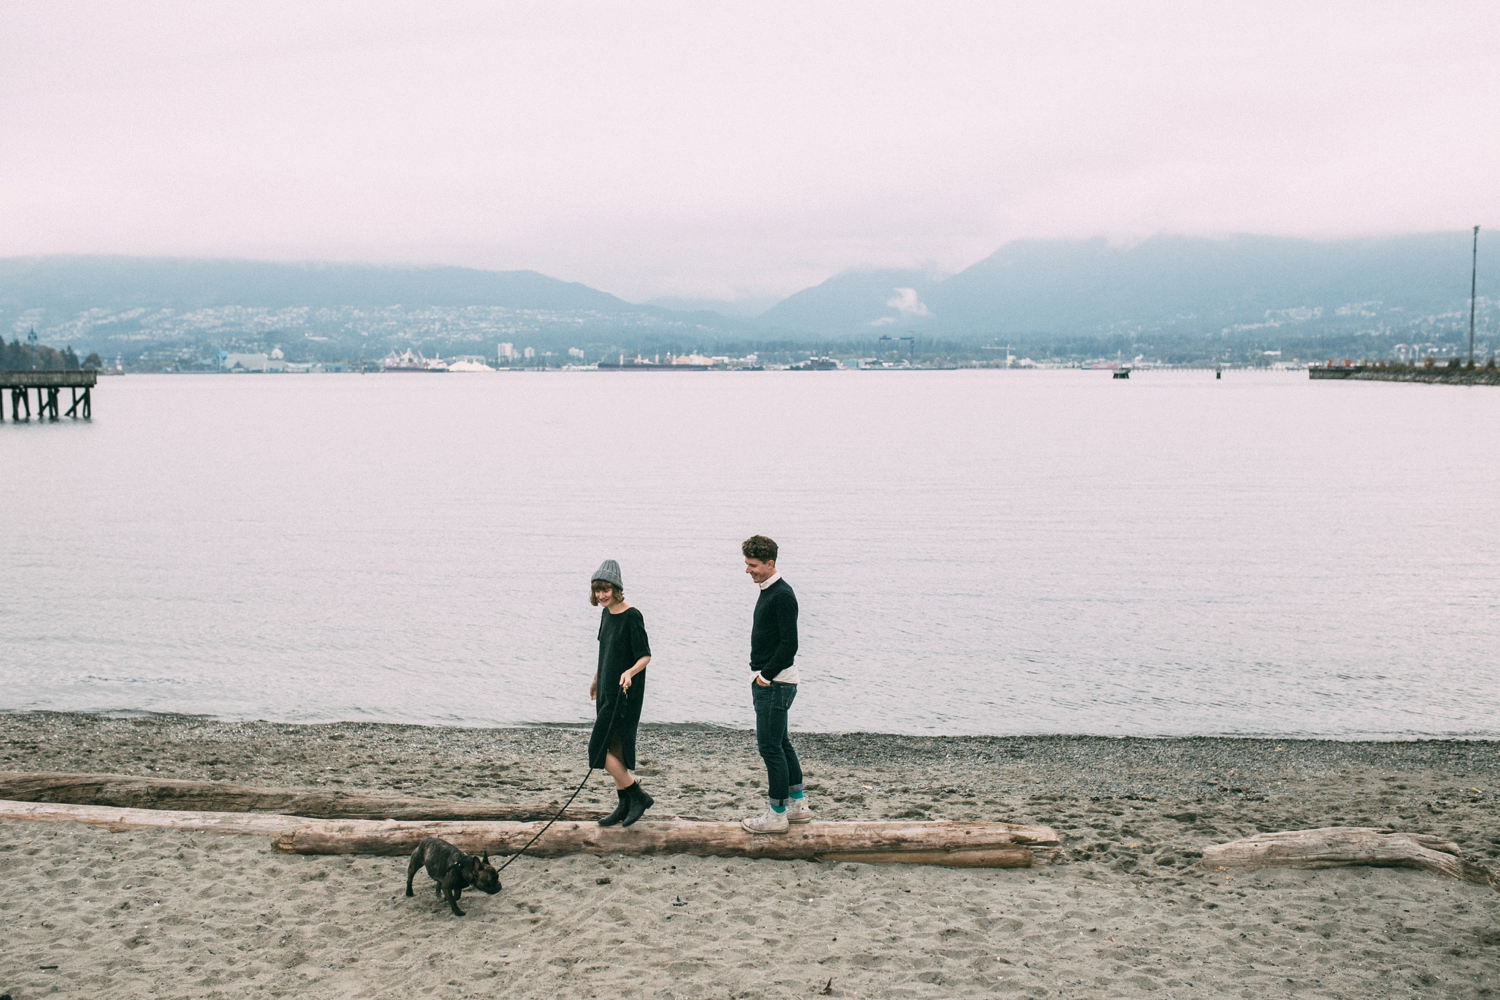 Epic image of couple walking their dog on the beach at sunset in Vancouver, BC